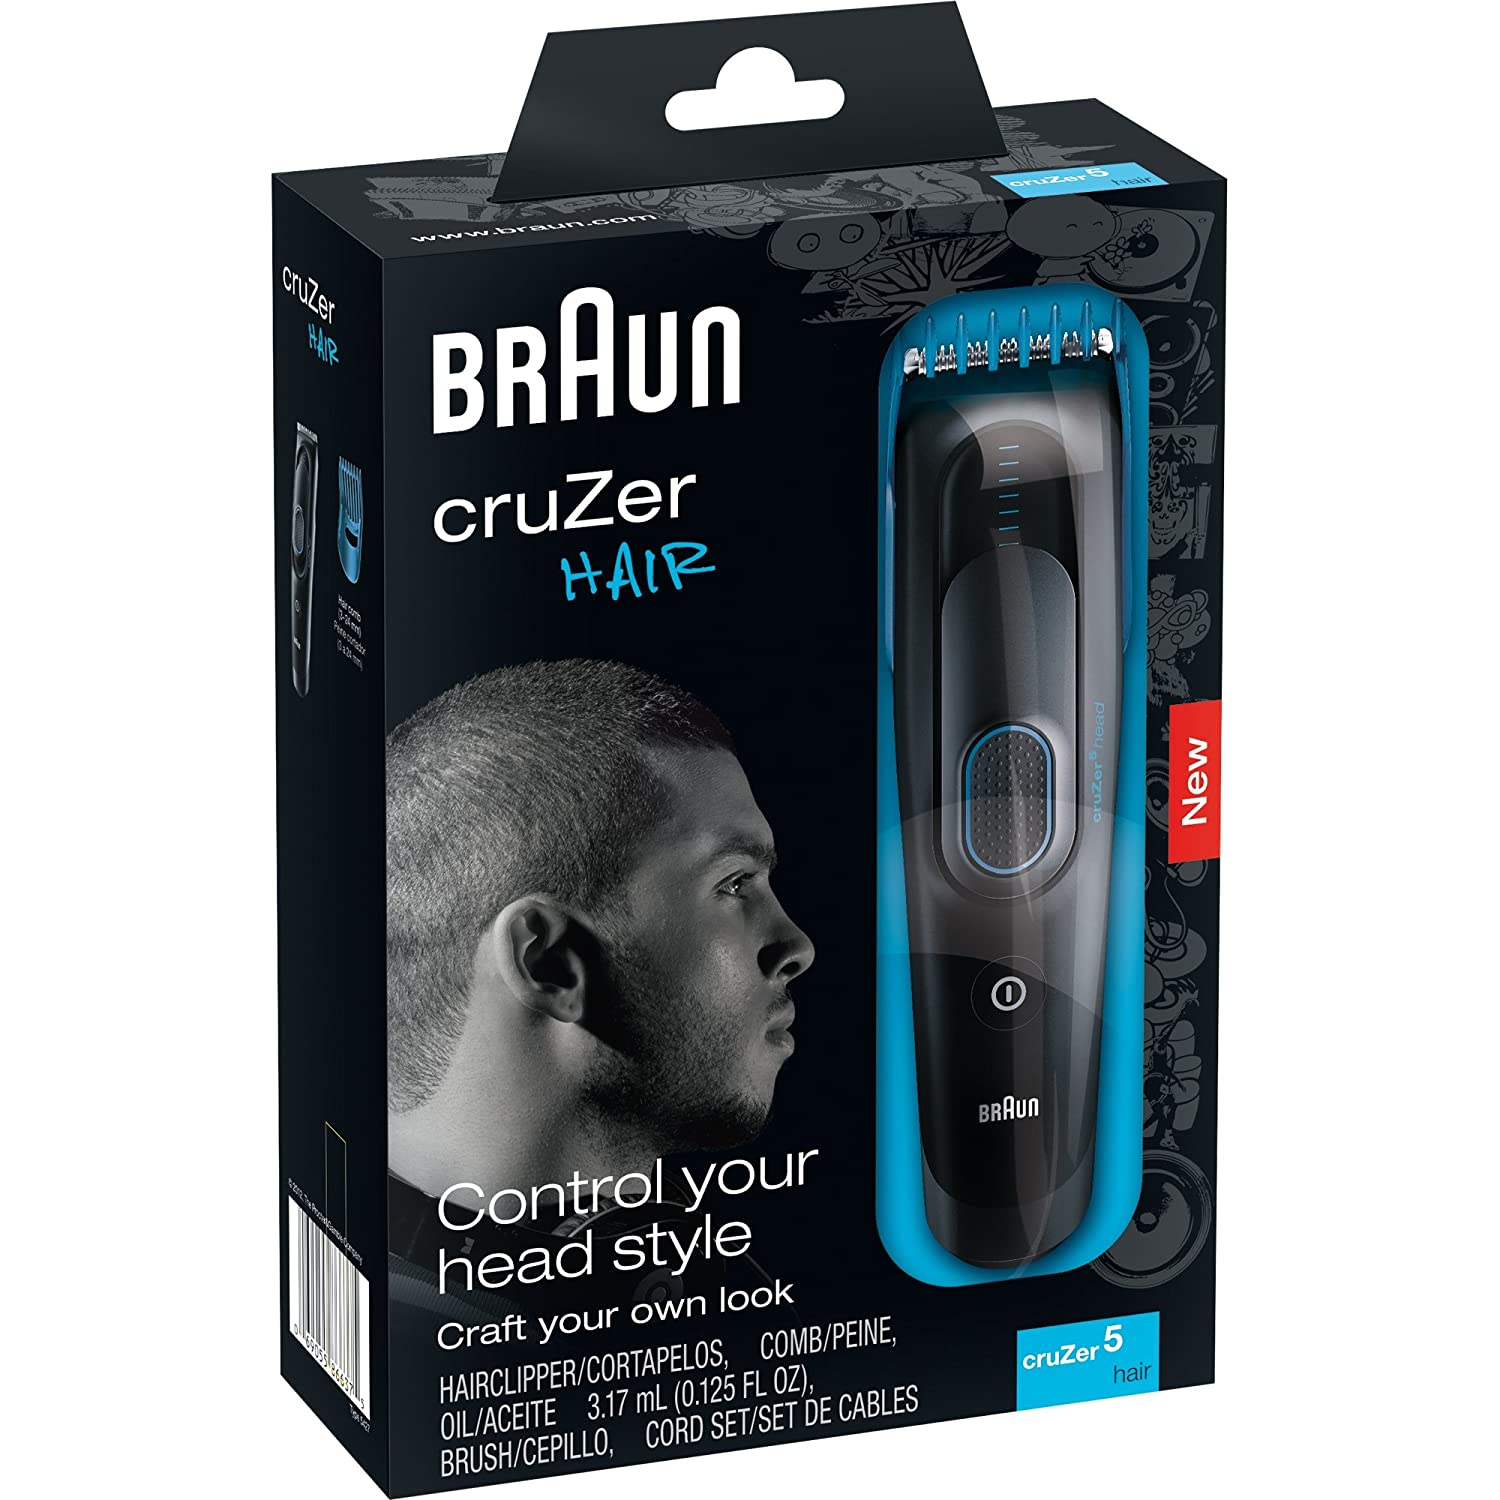 braun cruzer 5 hair trimmer 110 220 volts for worldwide use ebay. Black Bedroom Furniture Sets. Home Design Ideas